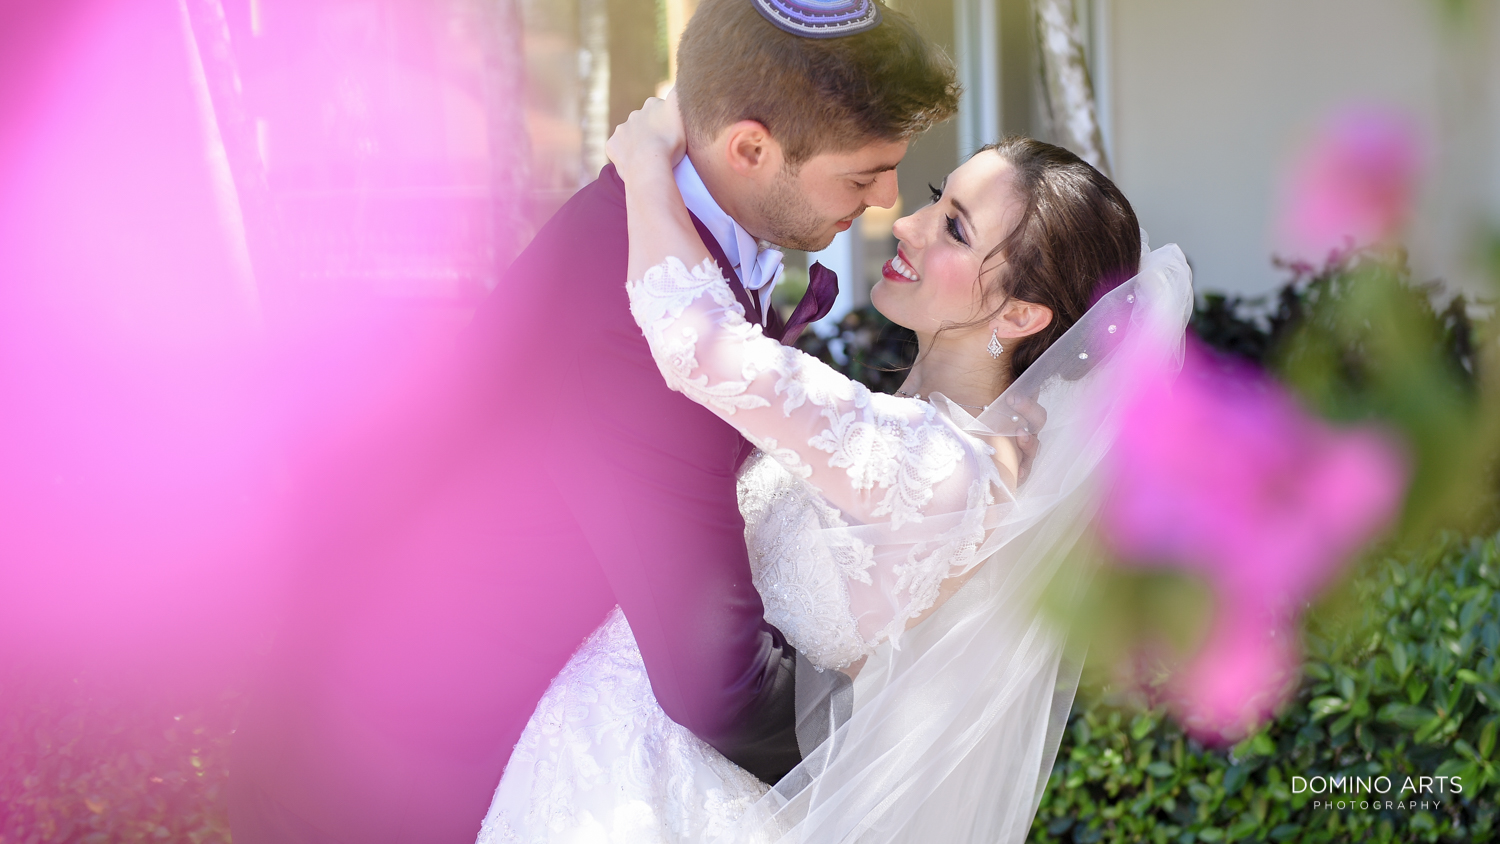 Fun and romantic wedding couple pictures at Trump national Doral in South Florida